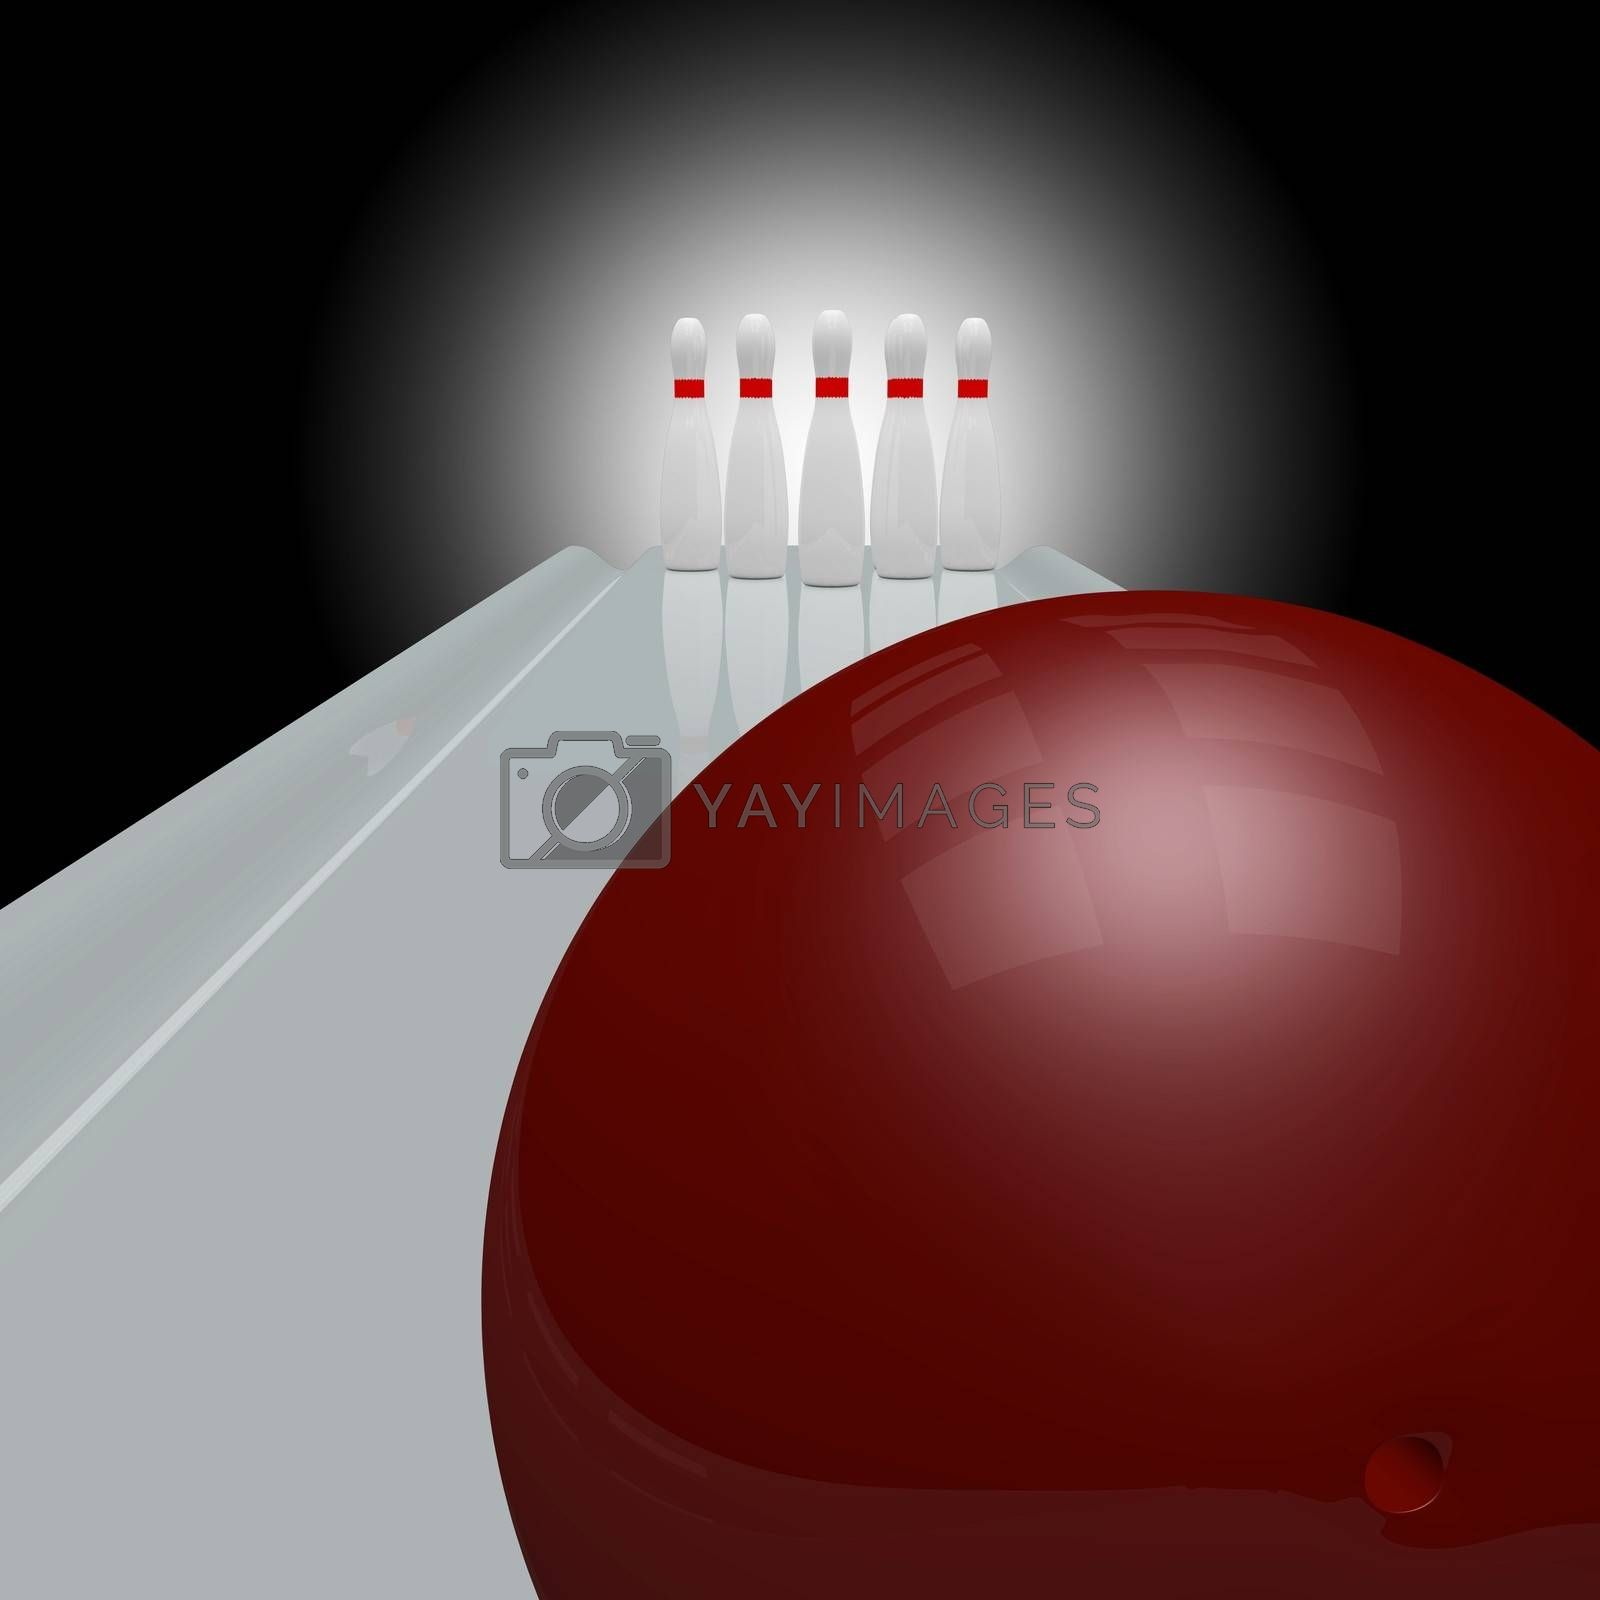 3d bowling alley scene with white bowling pins and a red ball waiting to be thrown